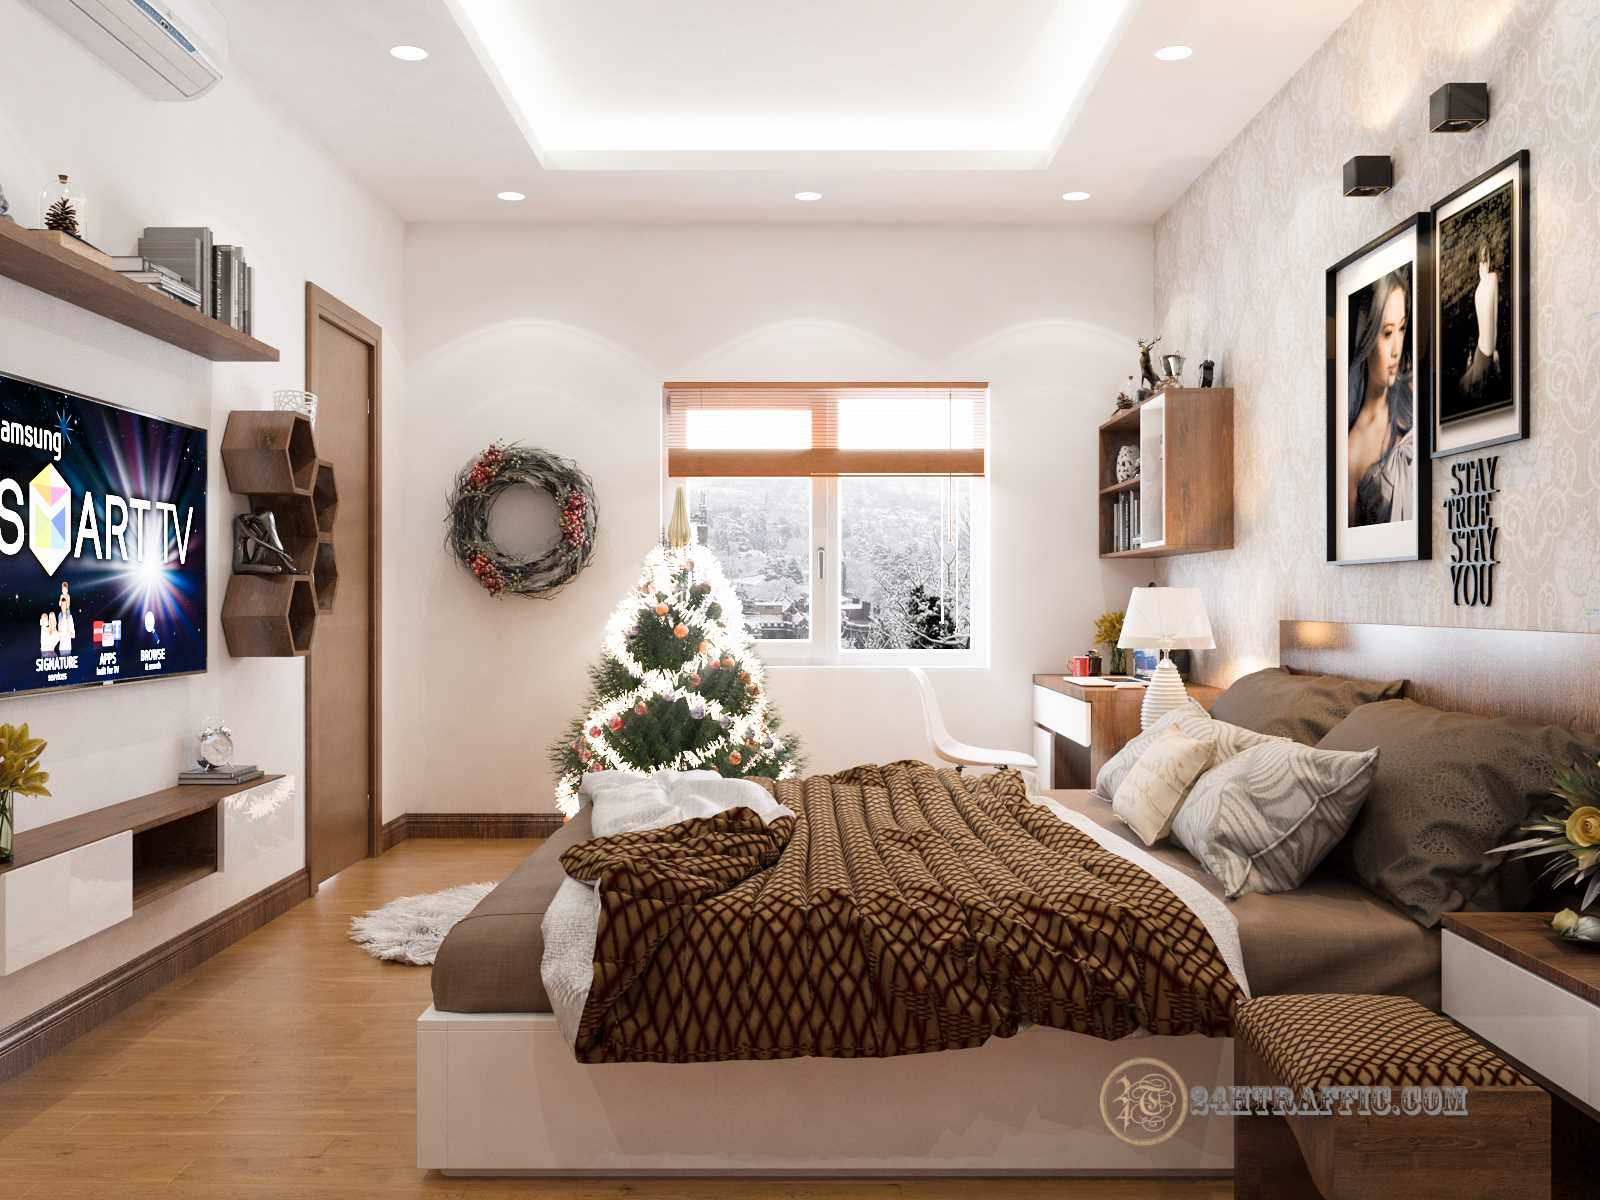 3dSkyHost: 3D Interior Scenes File 3dsmax Model Bedroom 36